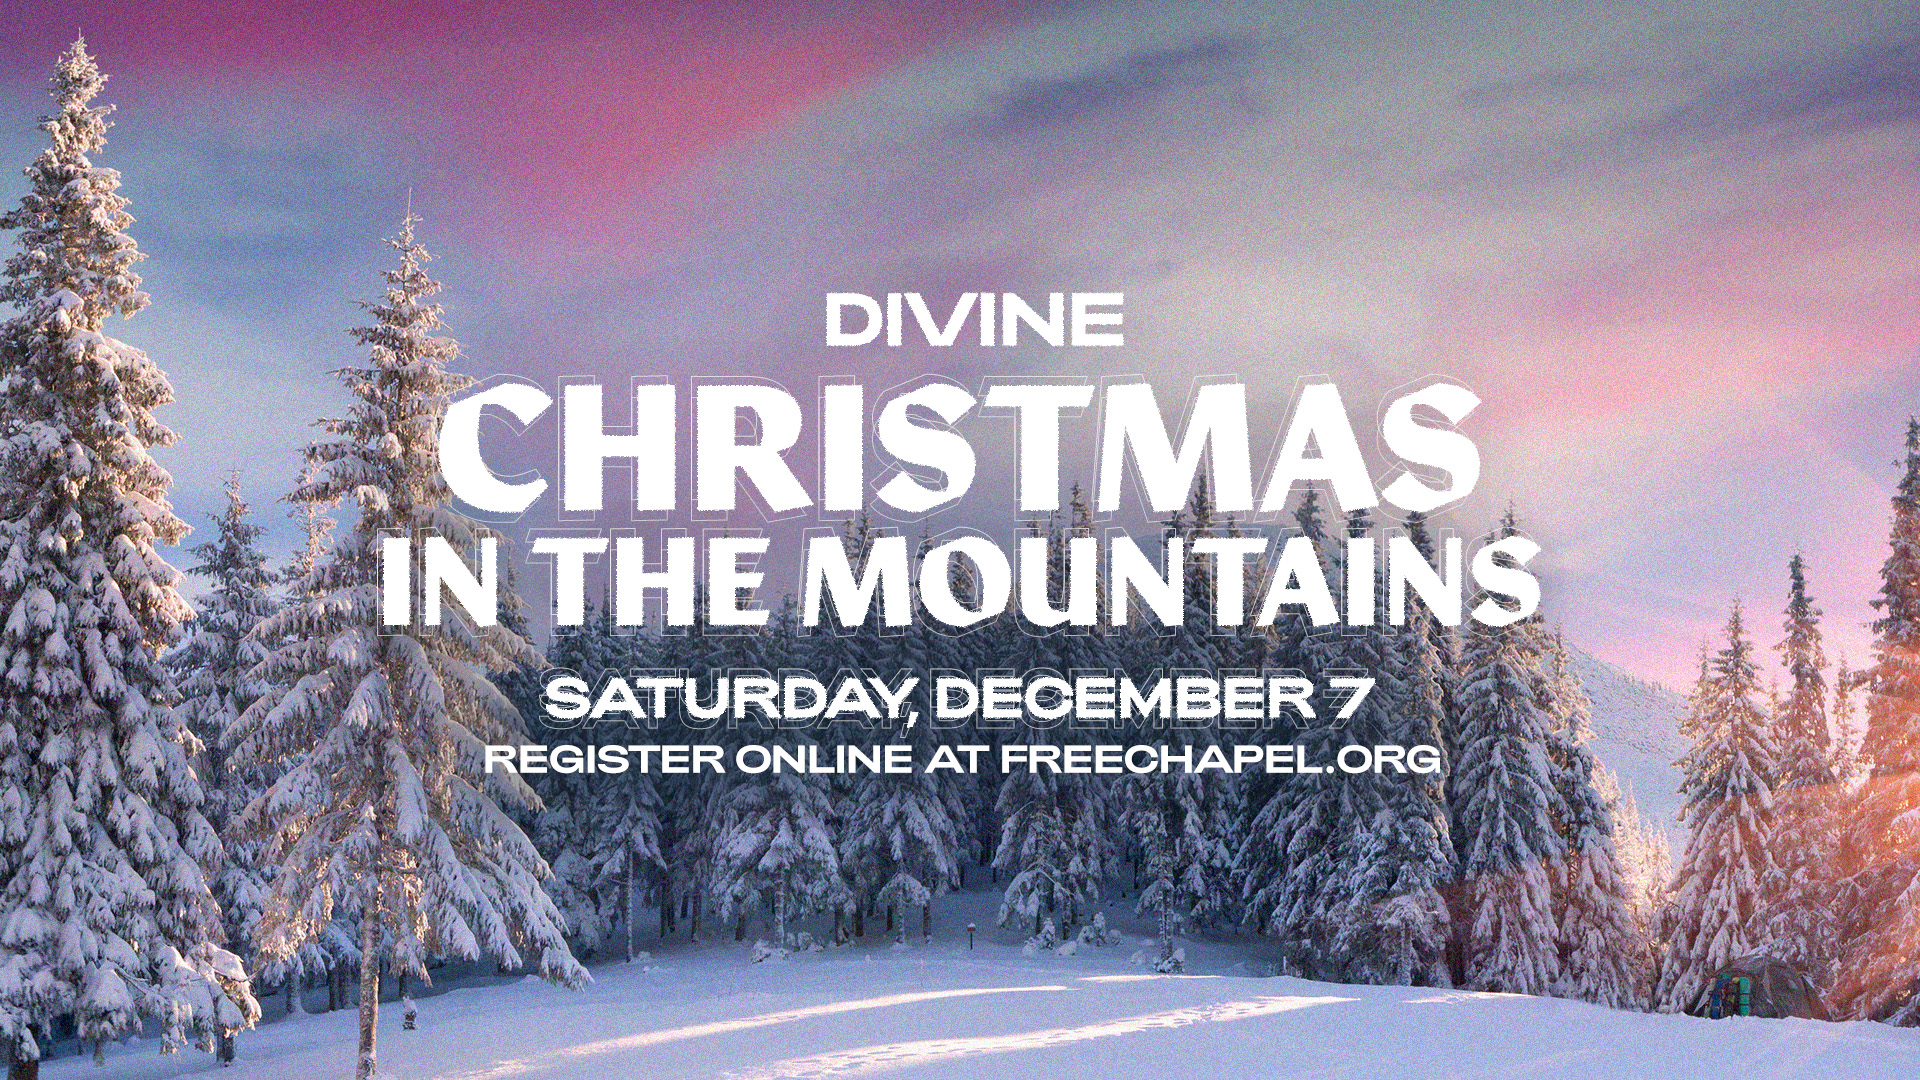 Divine Christmas in the Mountains at the Gainesville campus